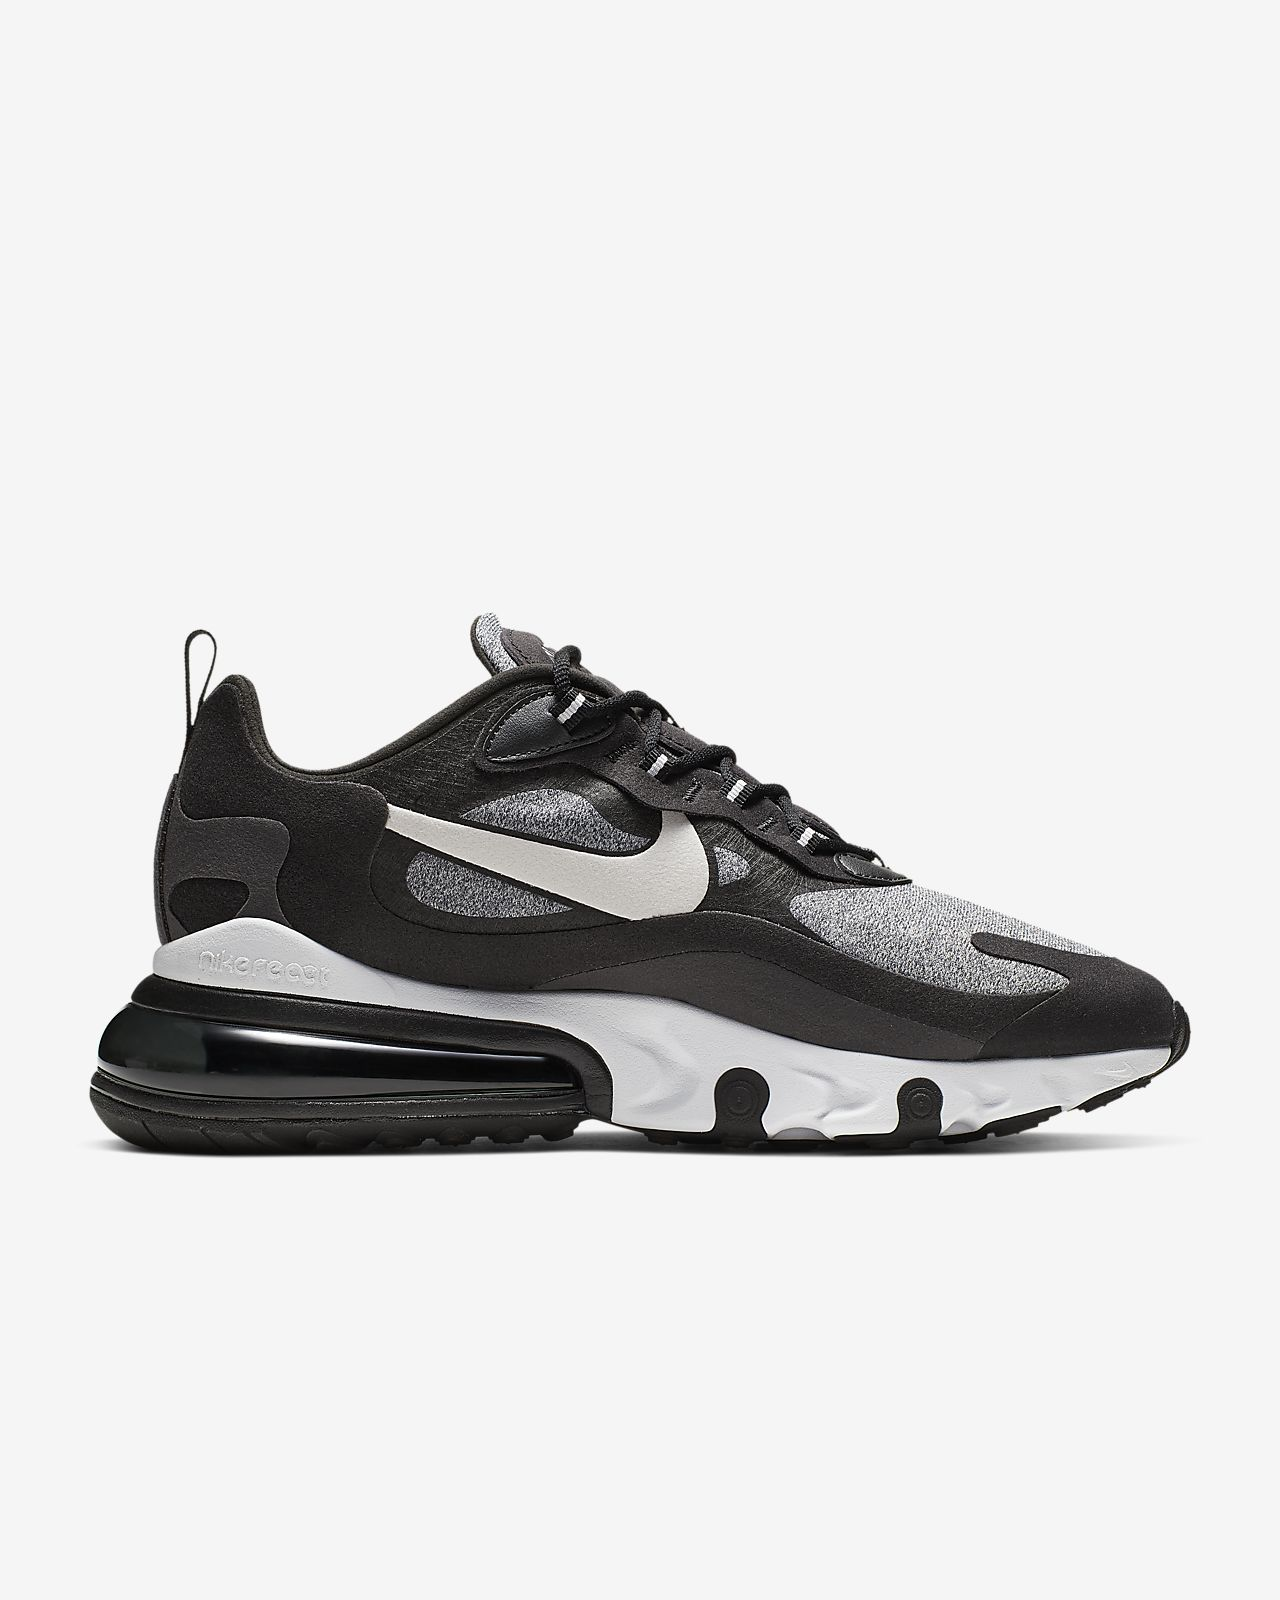 magasin en ligne 35fa6 60c4f Nike Air Max 270 React (Op Art) Men's Shoes